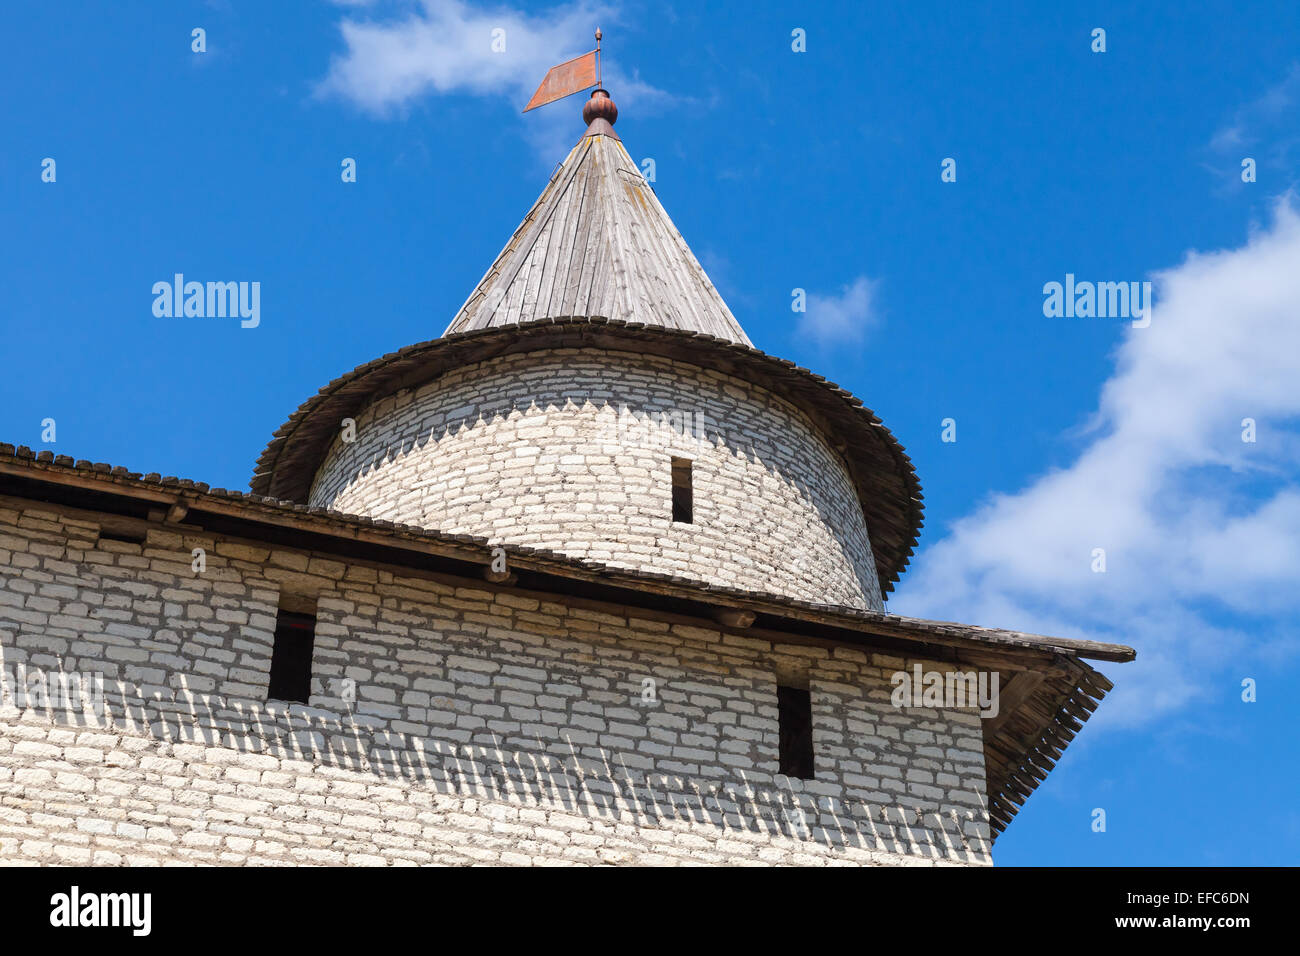 Stone tower of old fortress. Kremlin of Pskov, Russia. Classical Russian ancient architecture - Stock Image